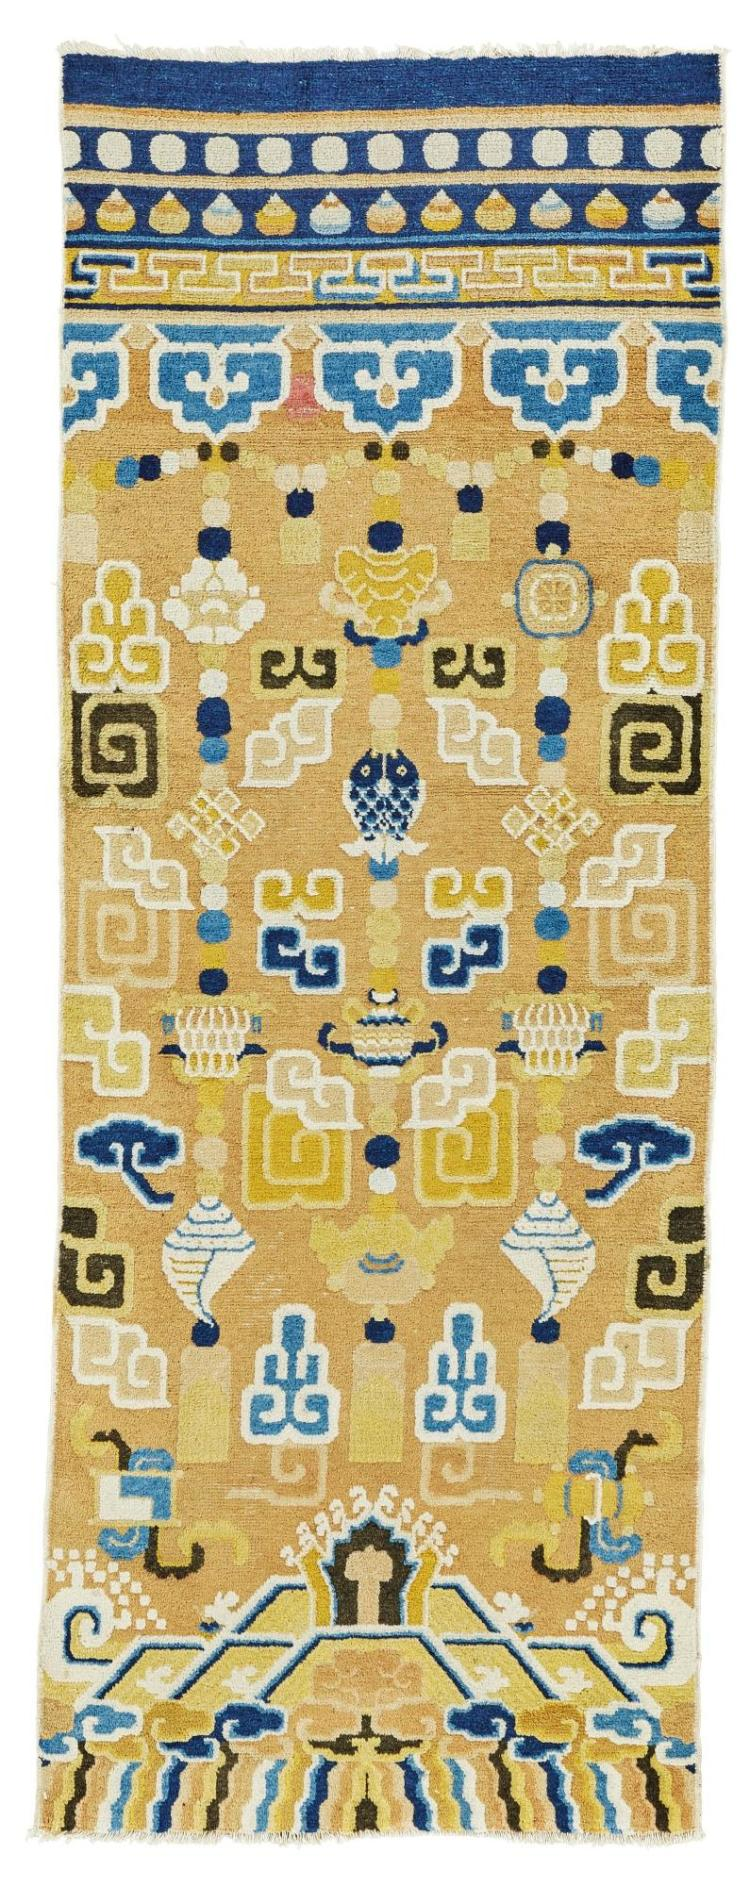 A NINGHSIA PILLAR RUG, WEST CHINA |